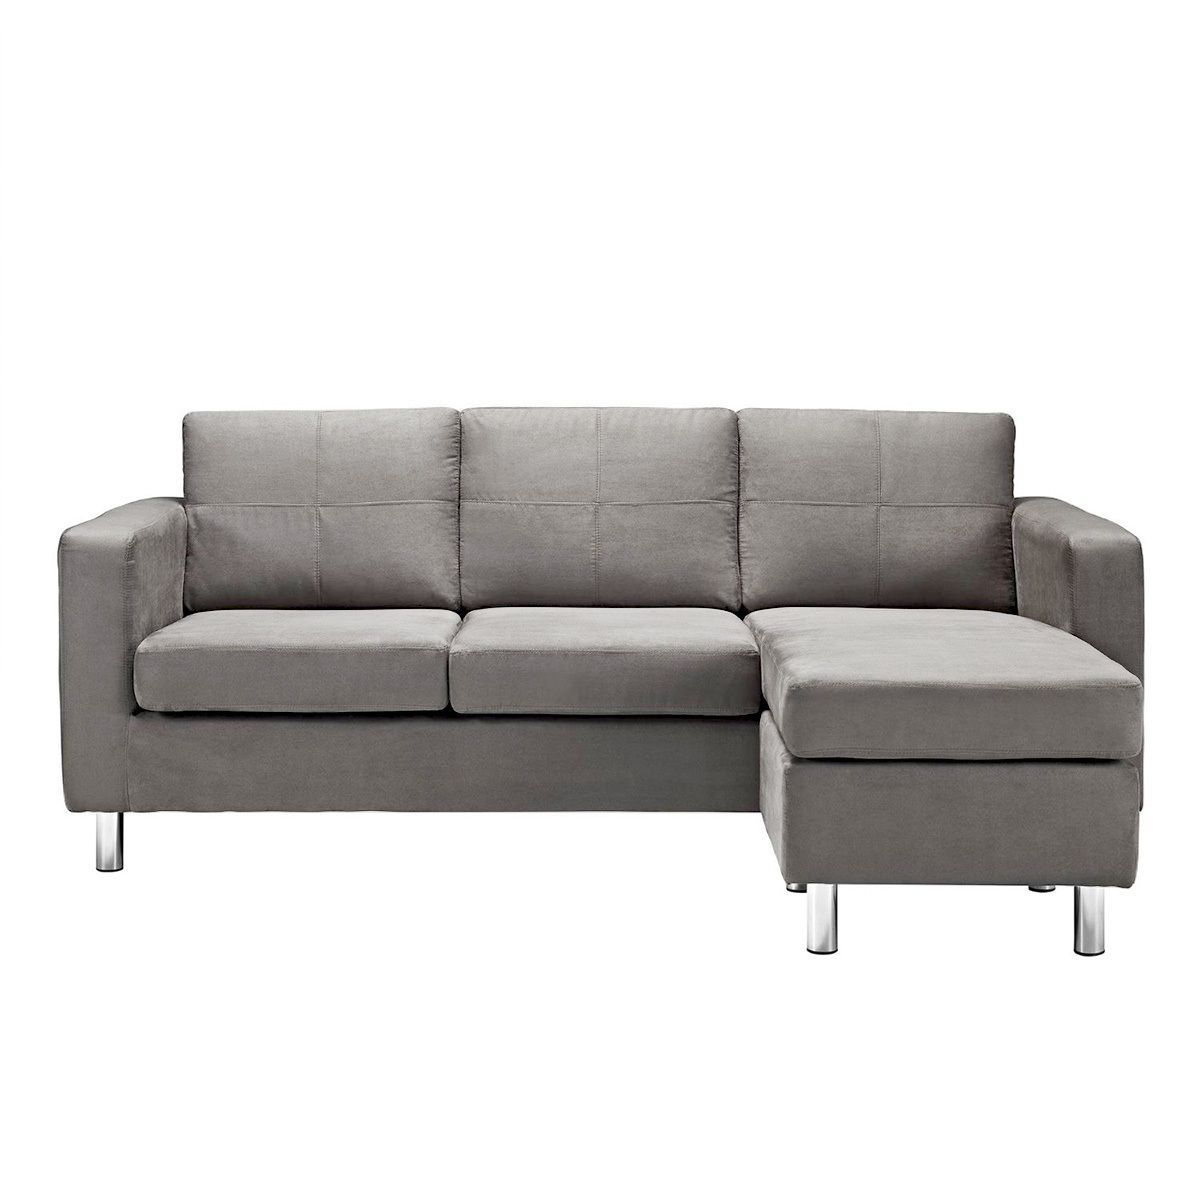 Best Modern Grey Microfiber Small Space Sectional Sofa With 400 x 300